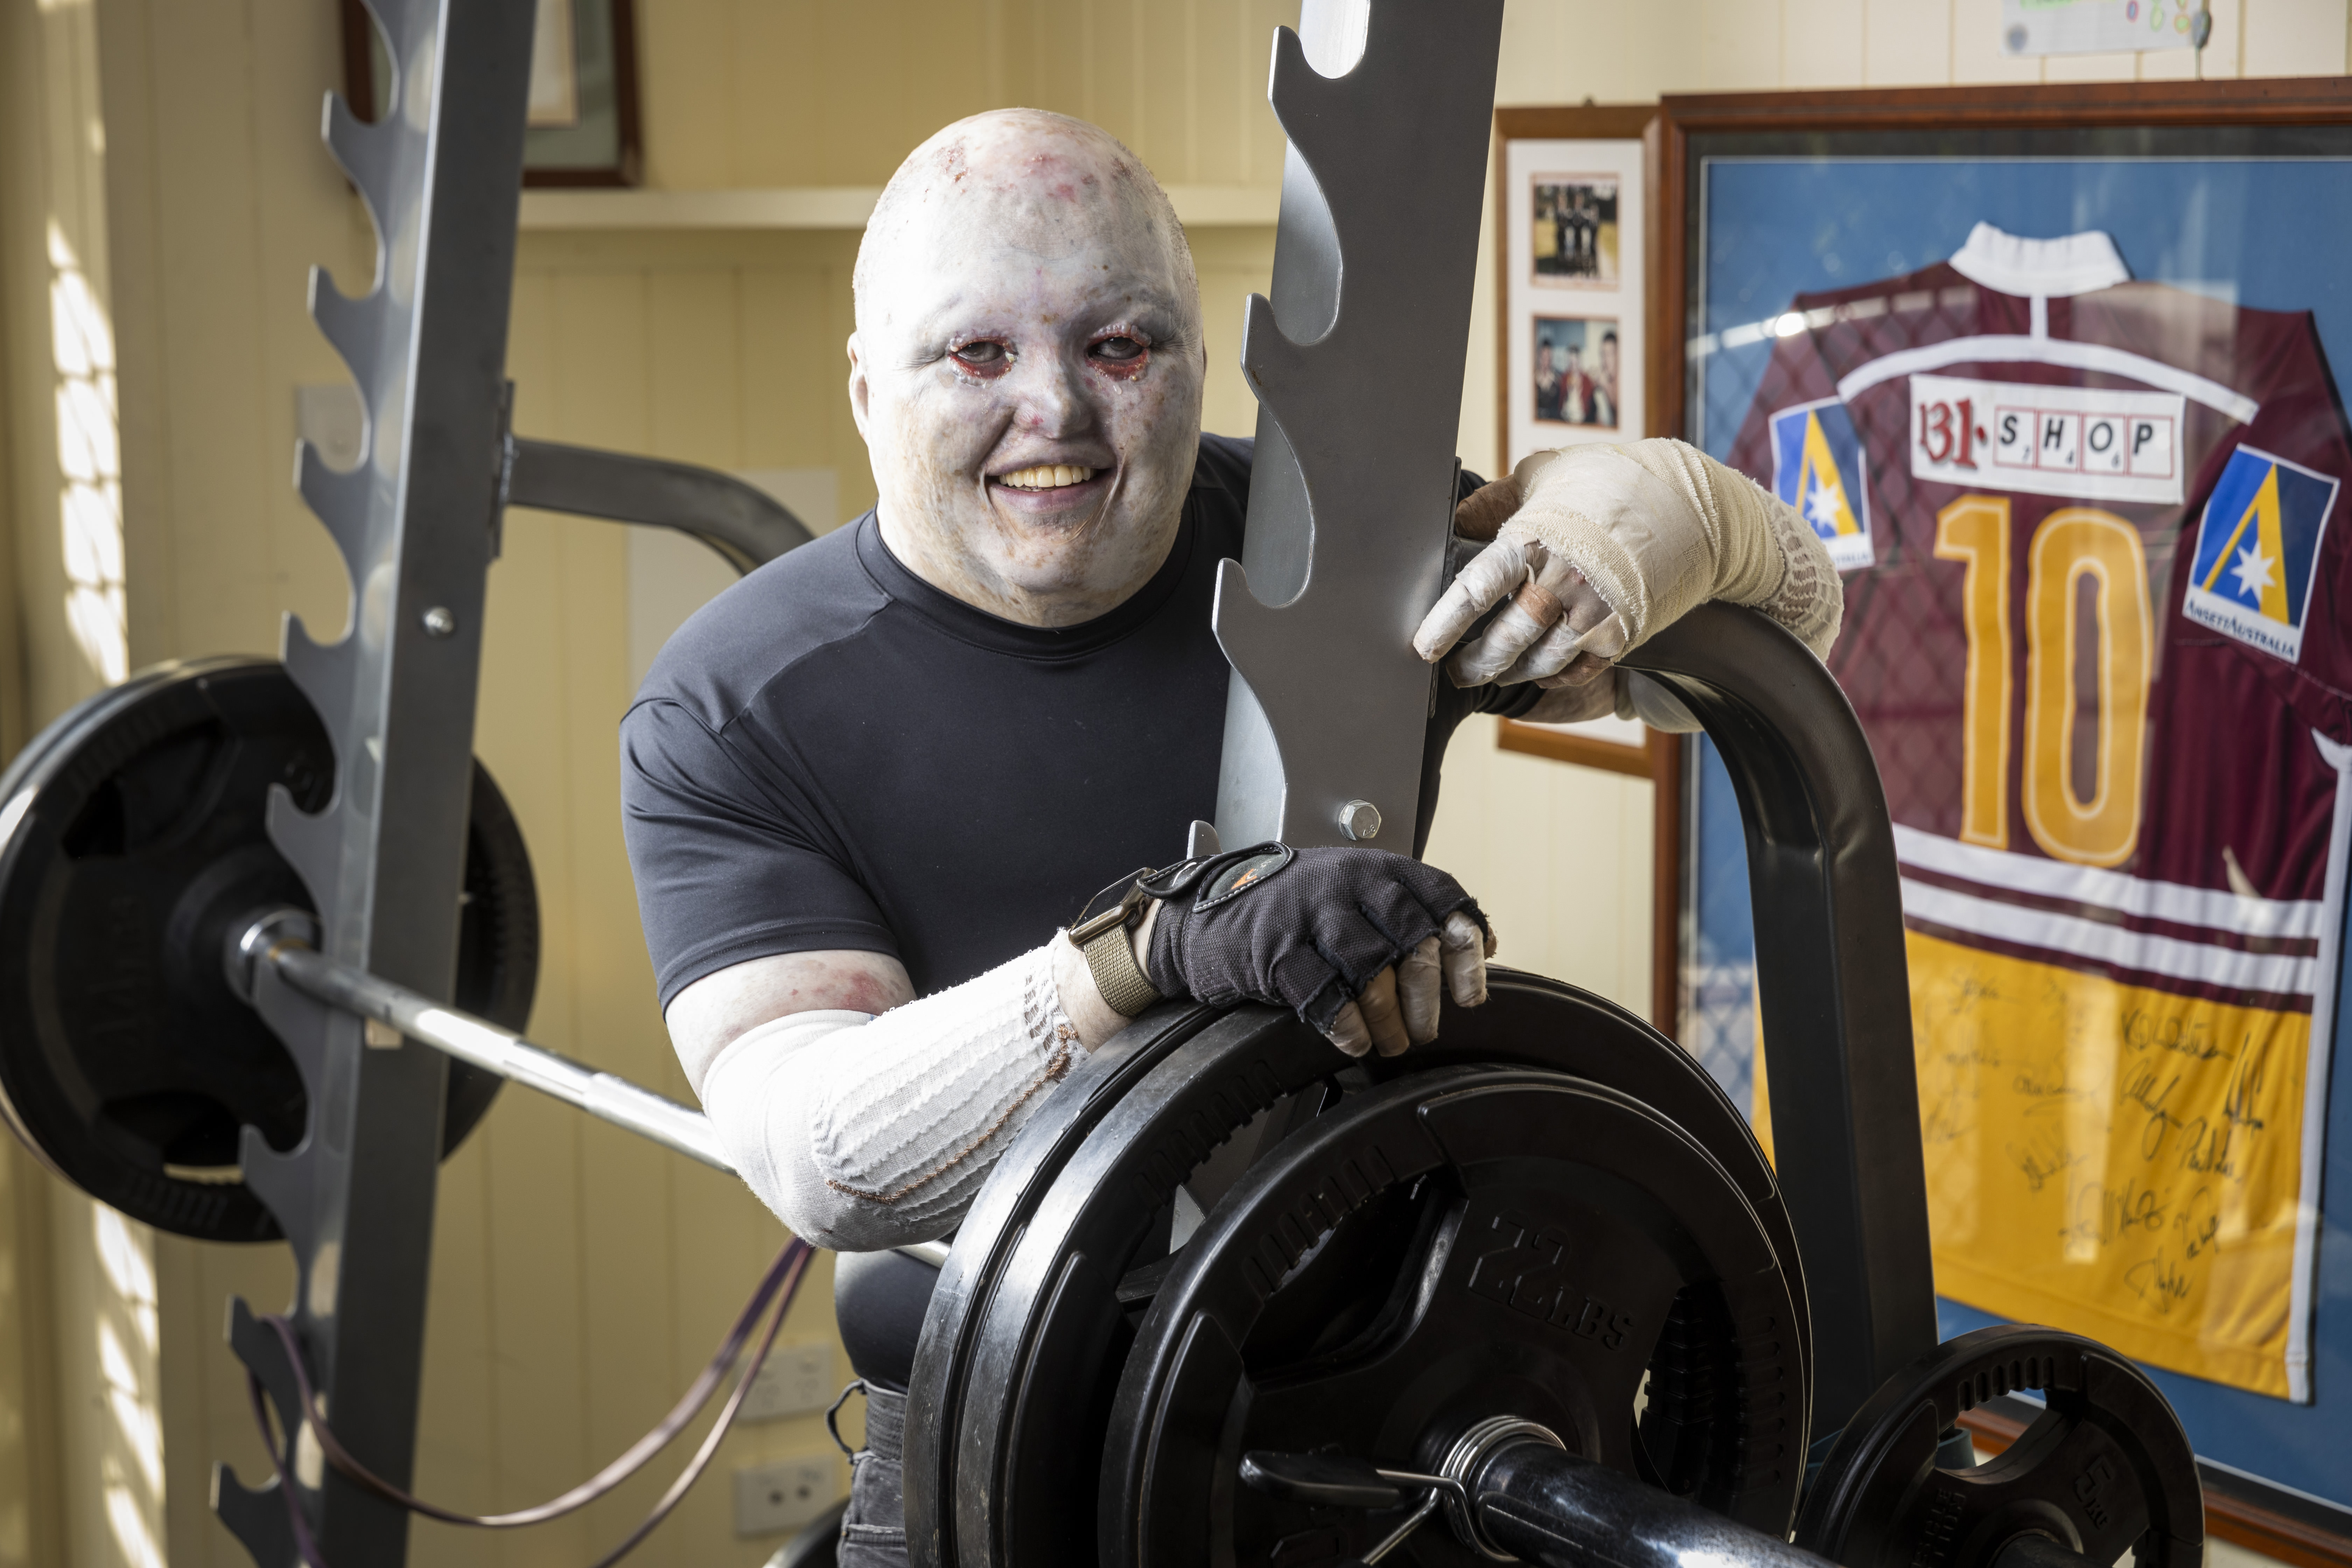 Dean at home with my weights